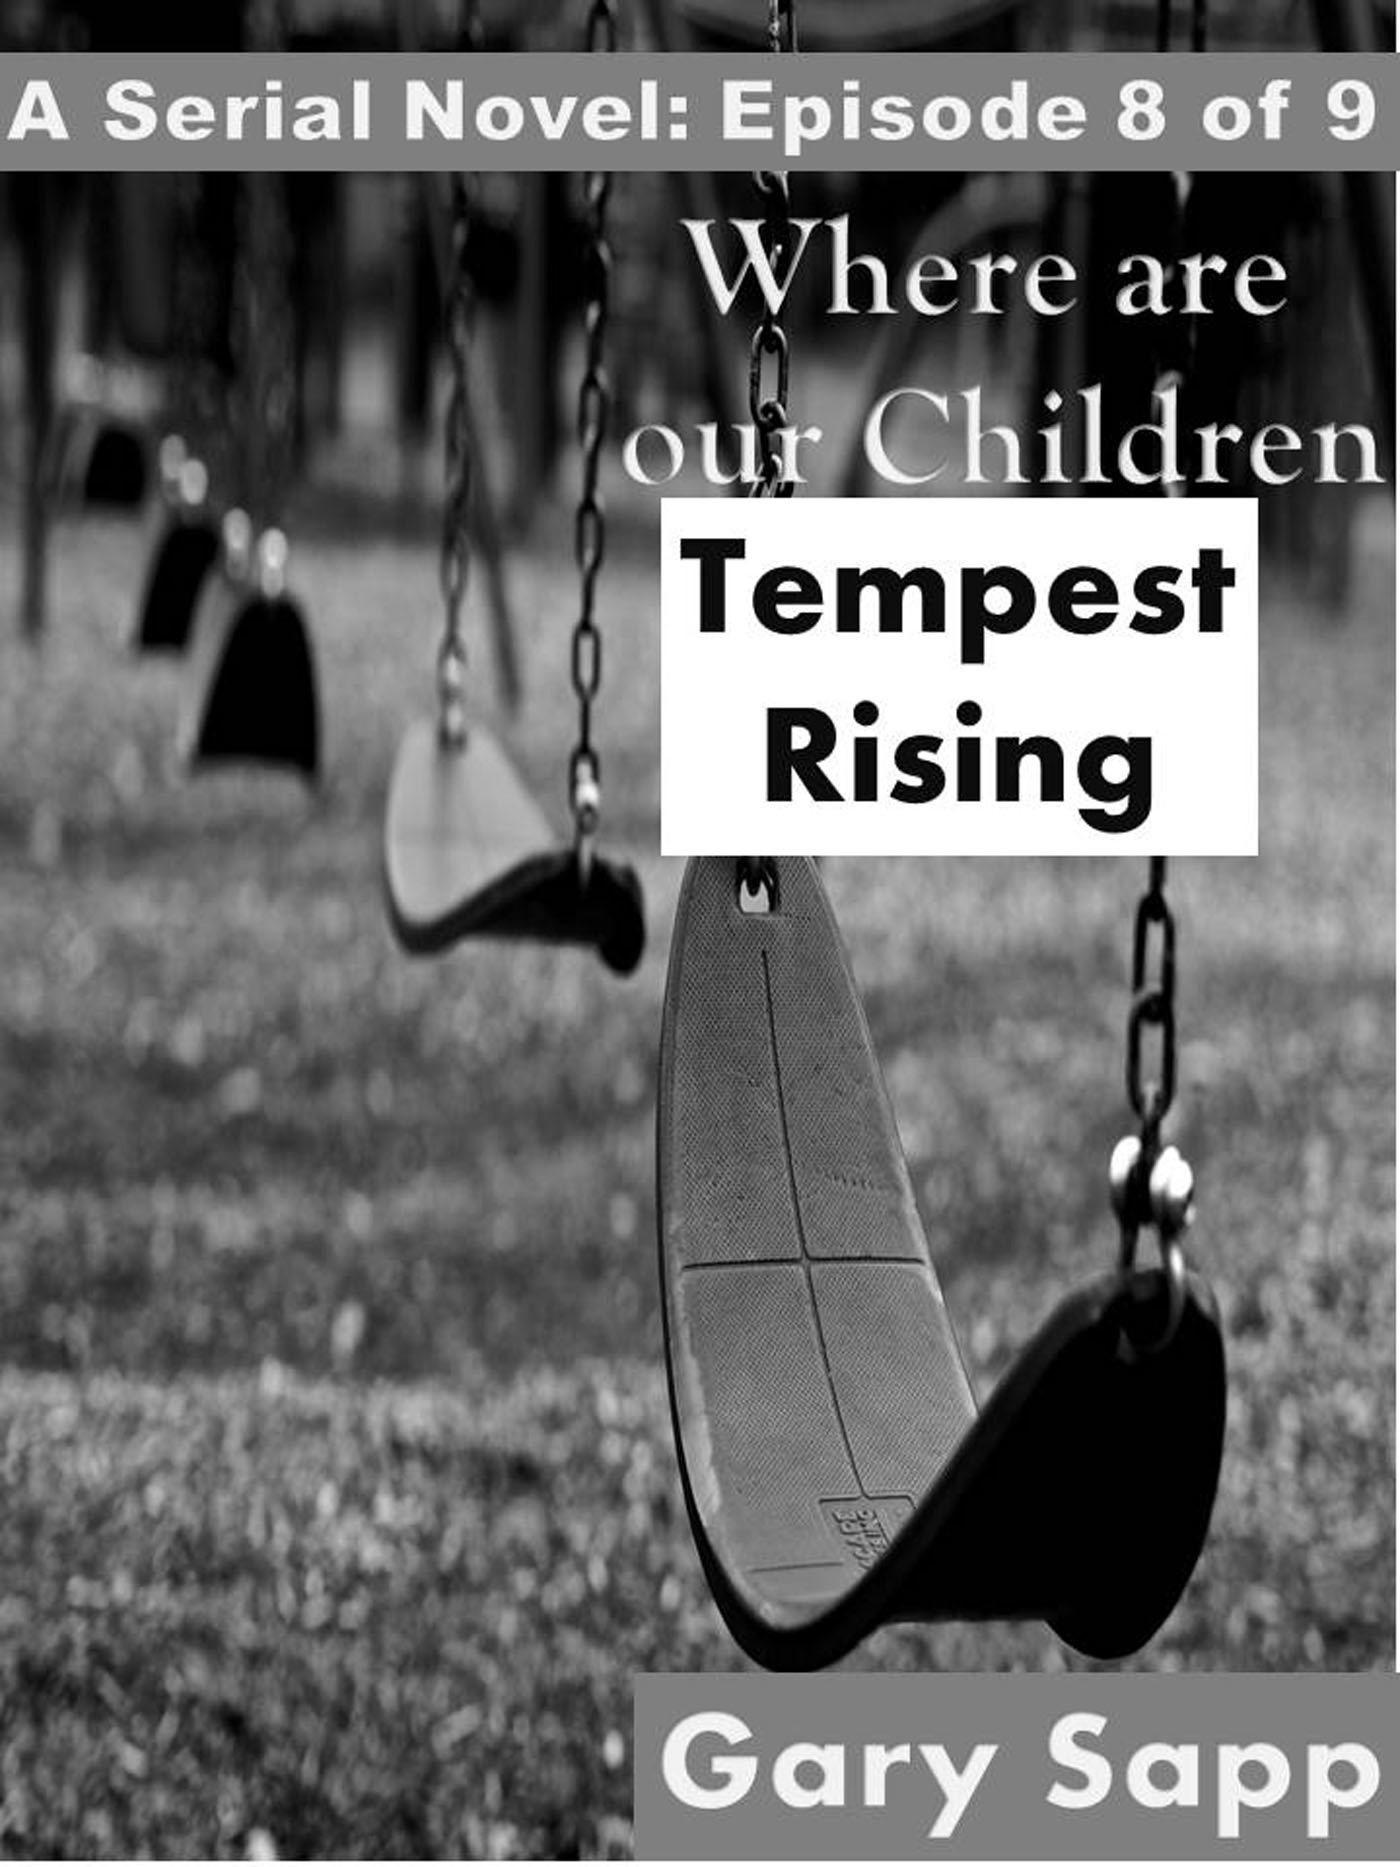 Tempest Rising: Where are our Children (A Serial Novel) Episode 8 of 9  by  Gary Sapp